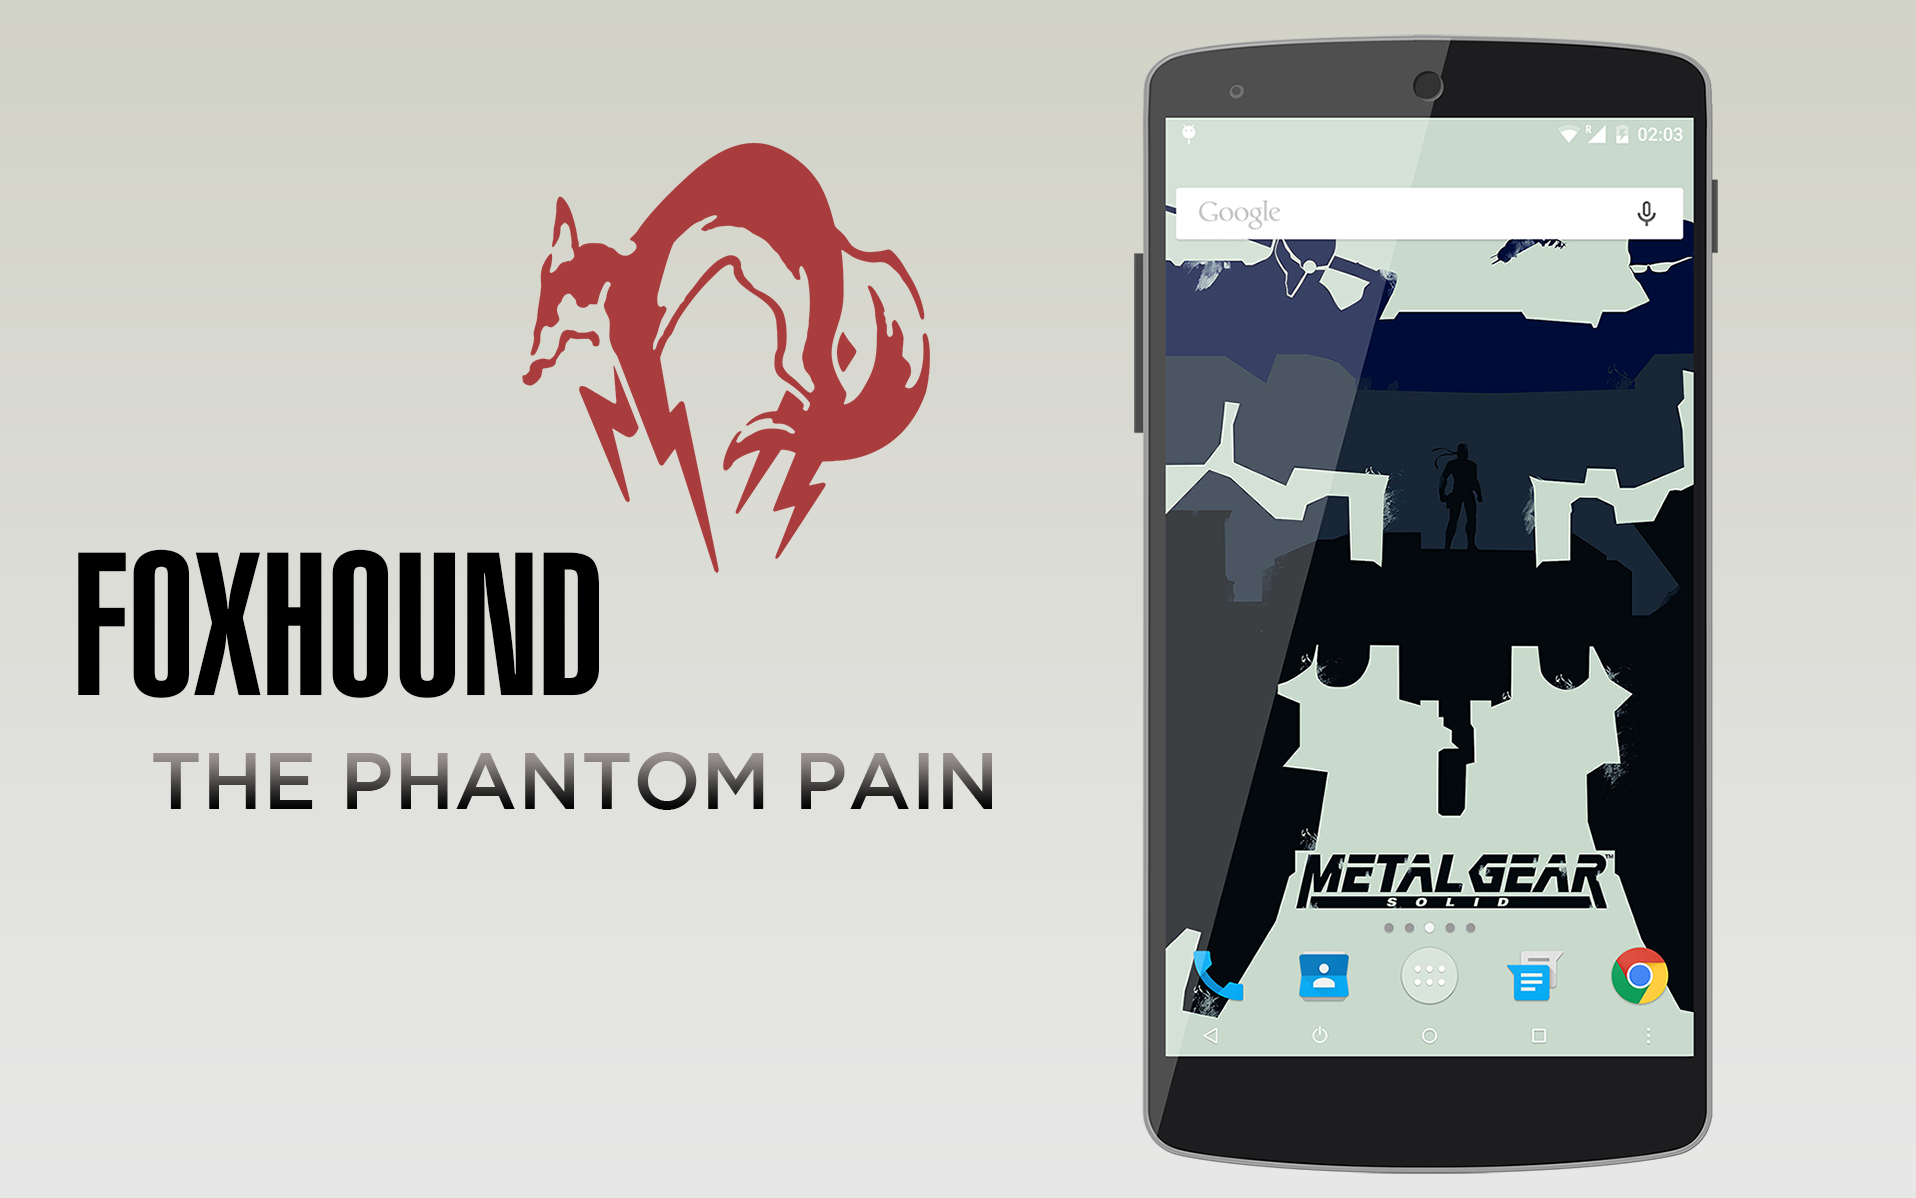 FoxHound The Phantom Pain - Android 5-0 Lollipop ROM